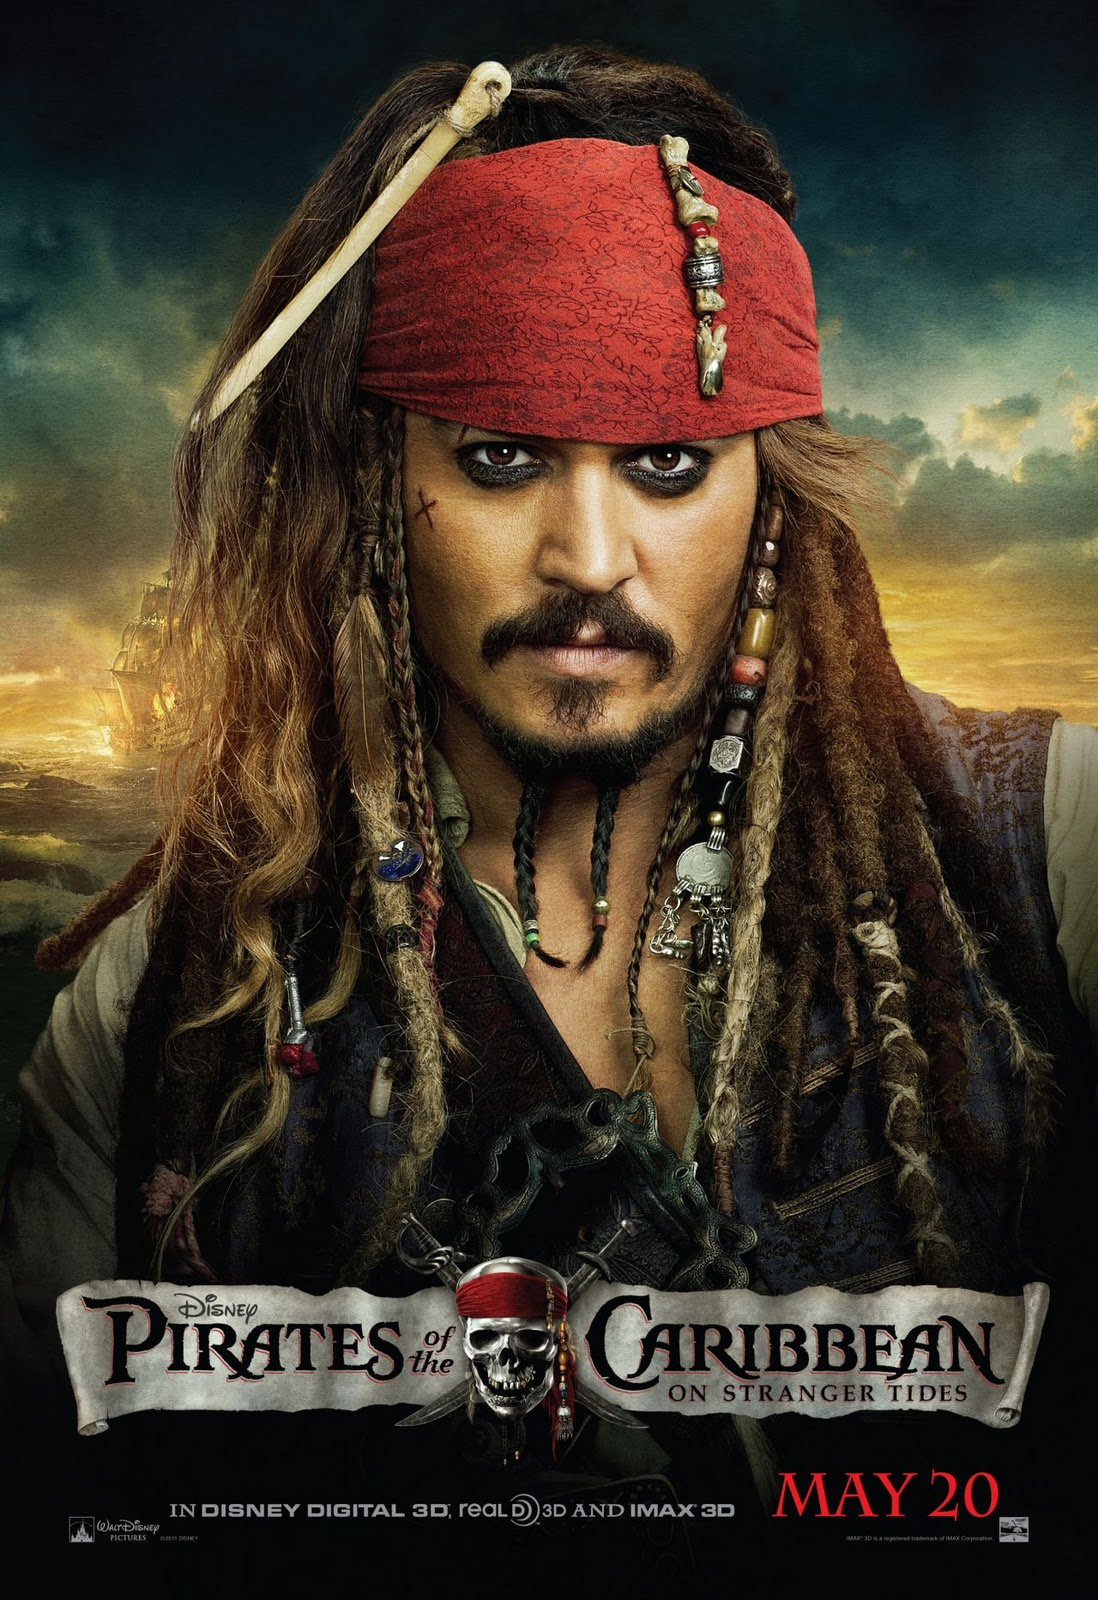 pirates of the caribbean stranger tides wallpapers - 39 Pirates Of The Caribbean On Stranger Tides HD